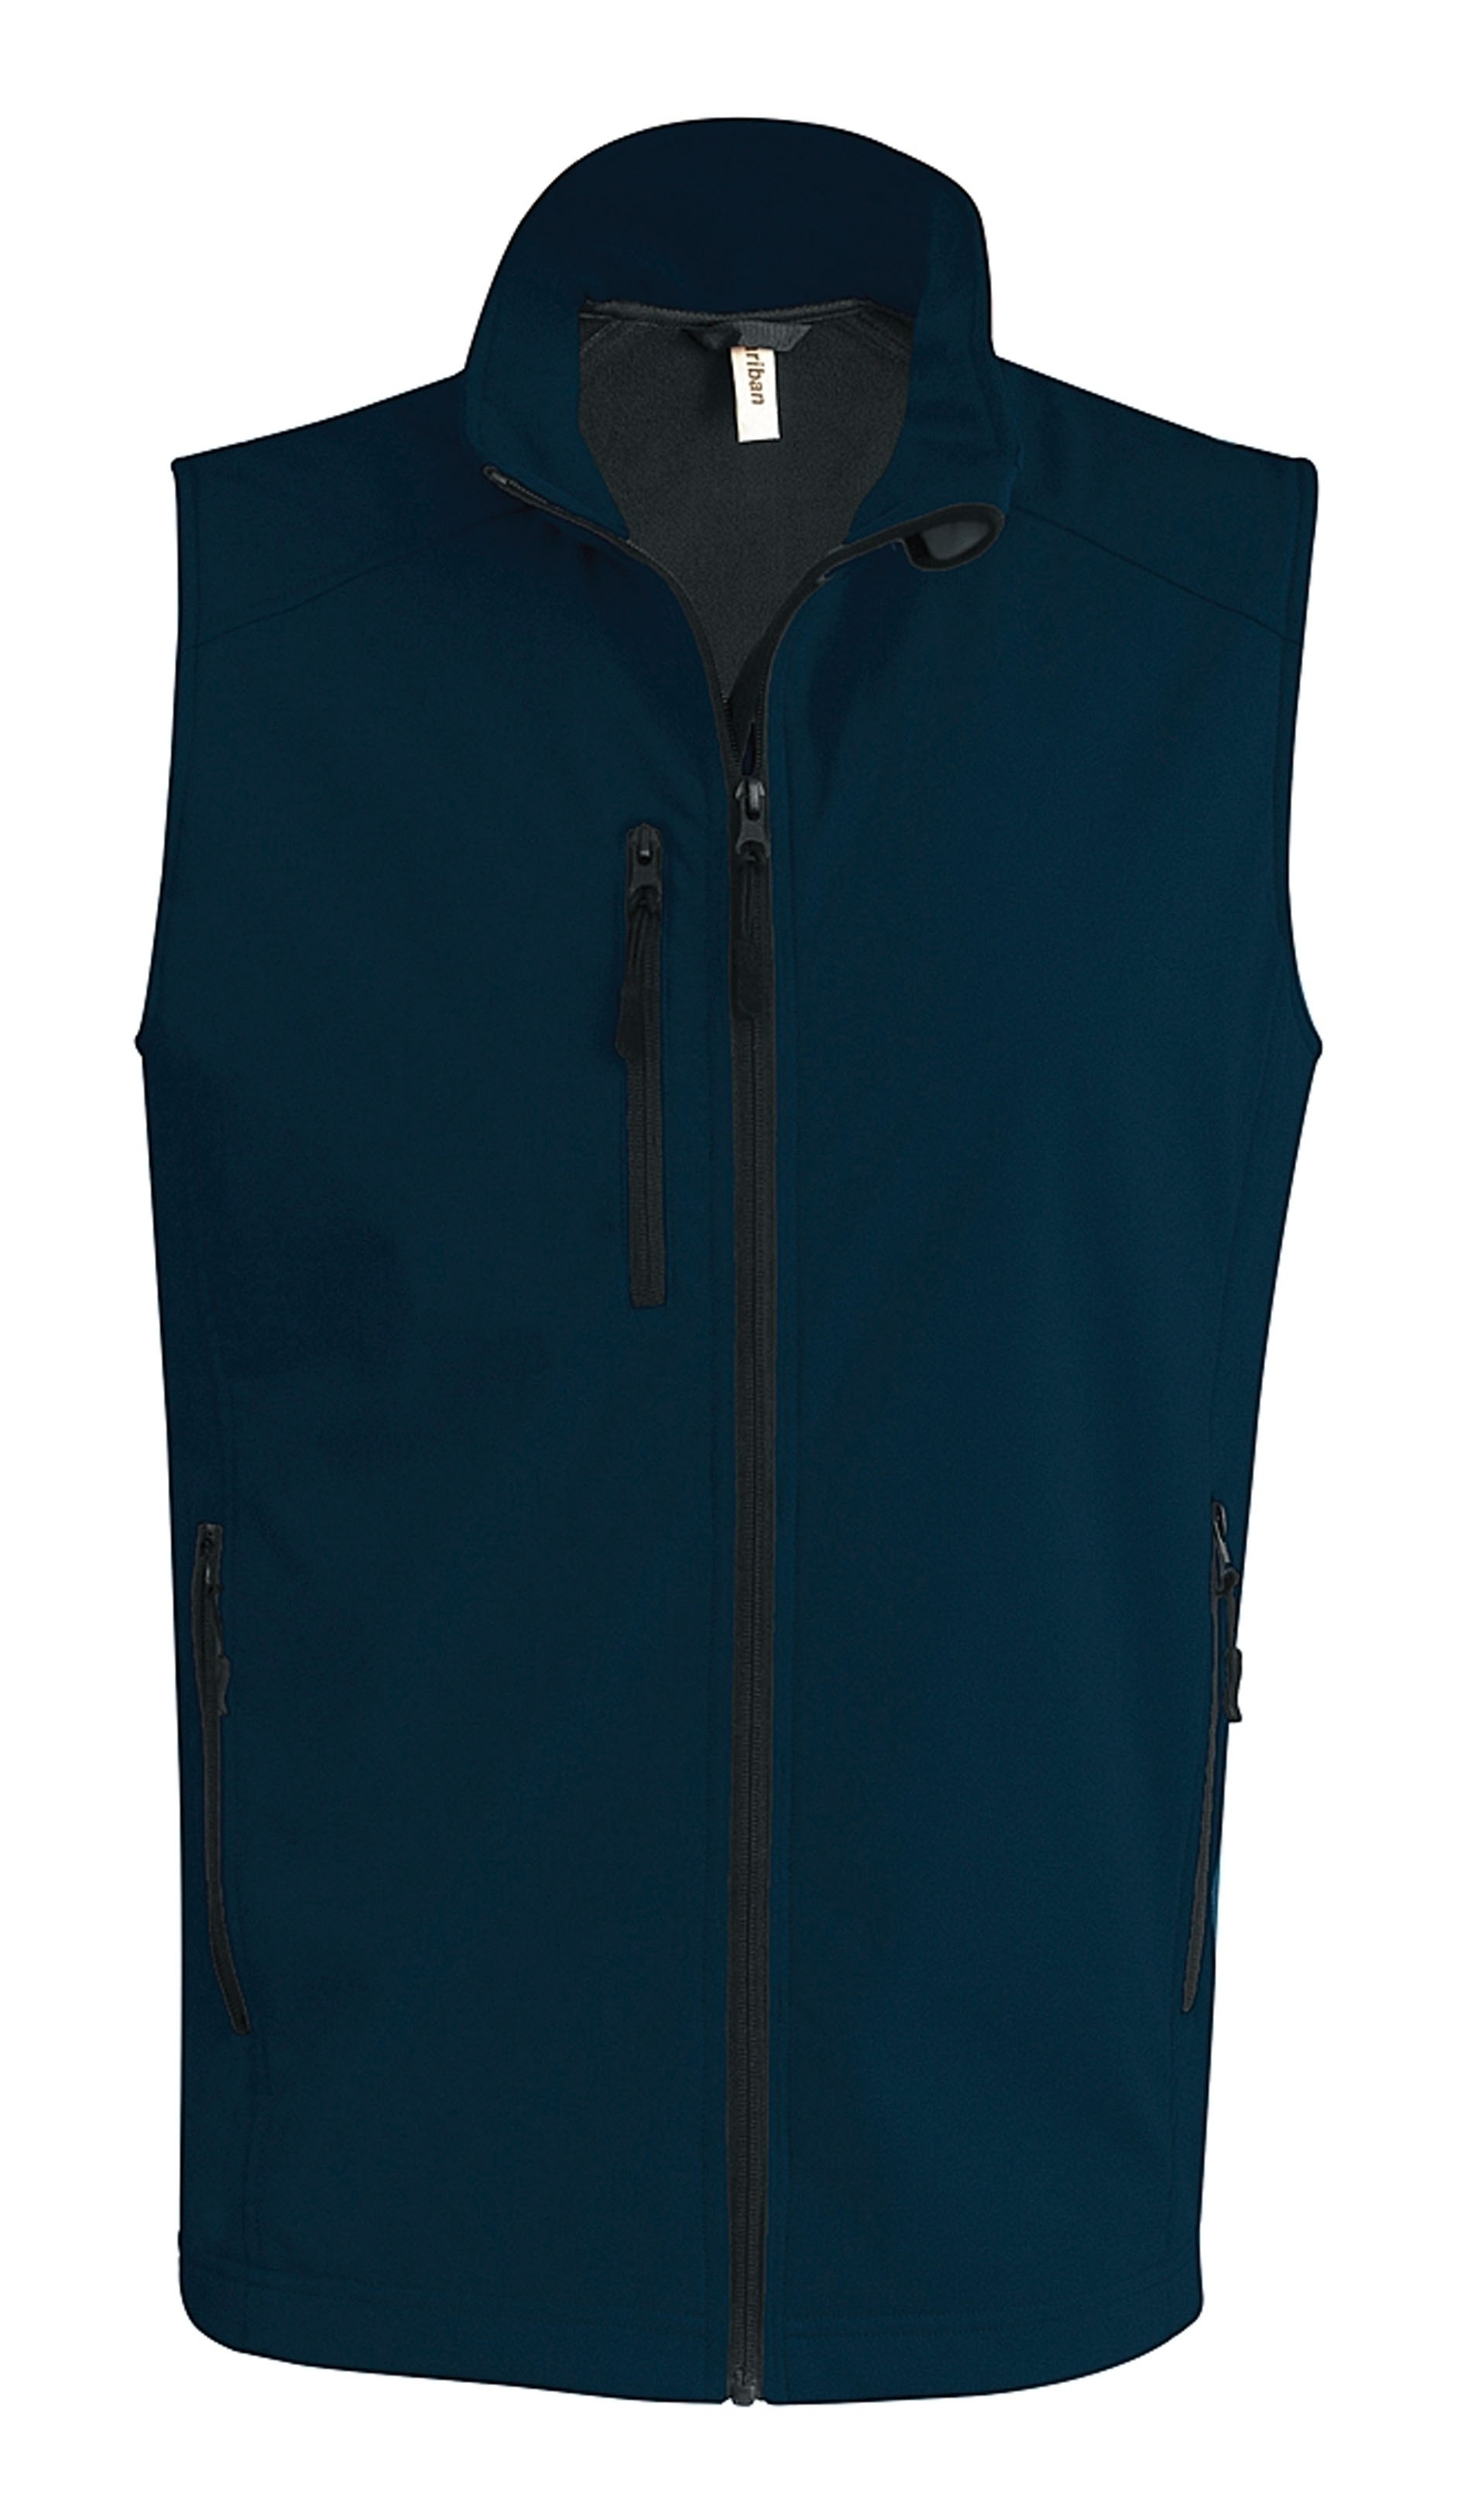 BODYWARMER SOFTSHELL Navy Bleu